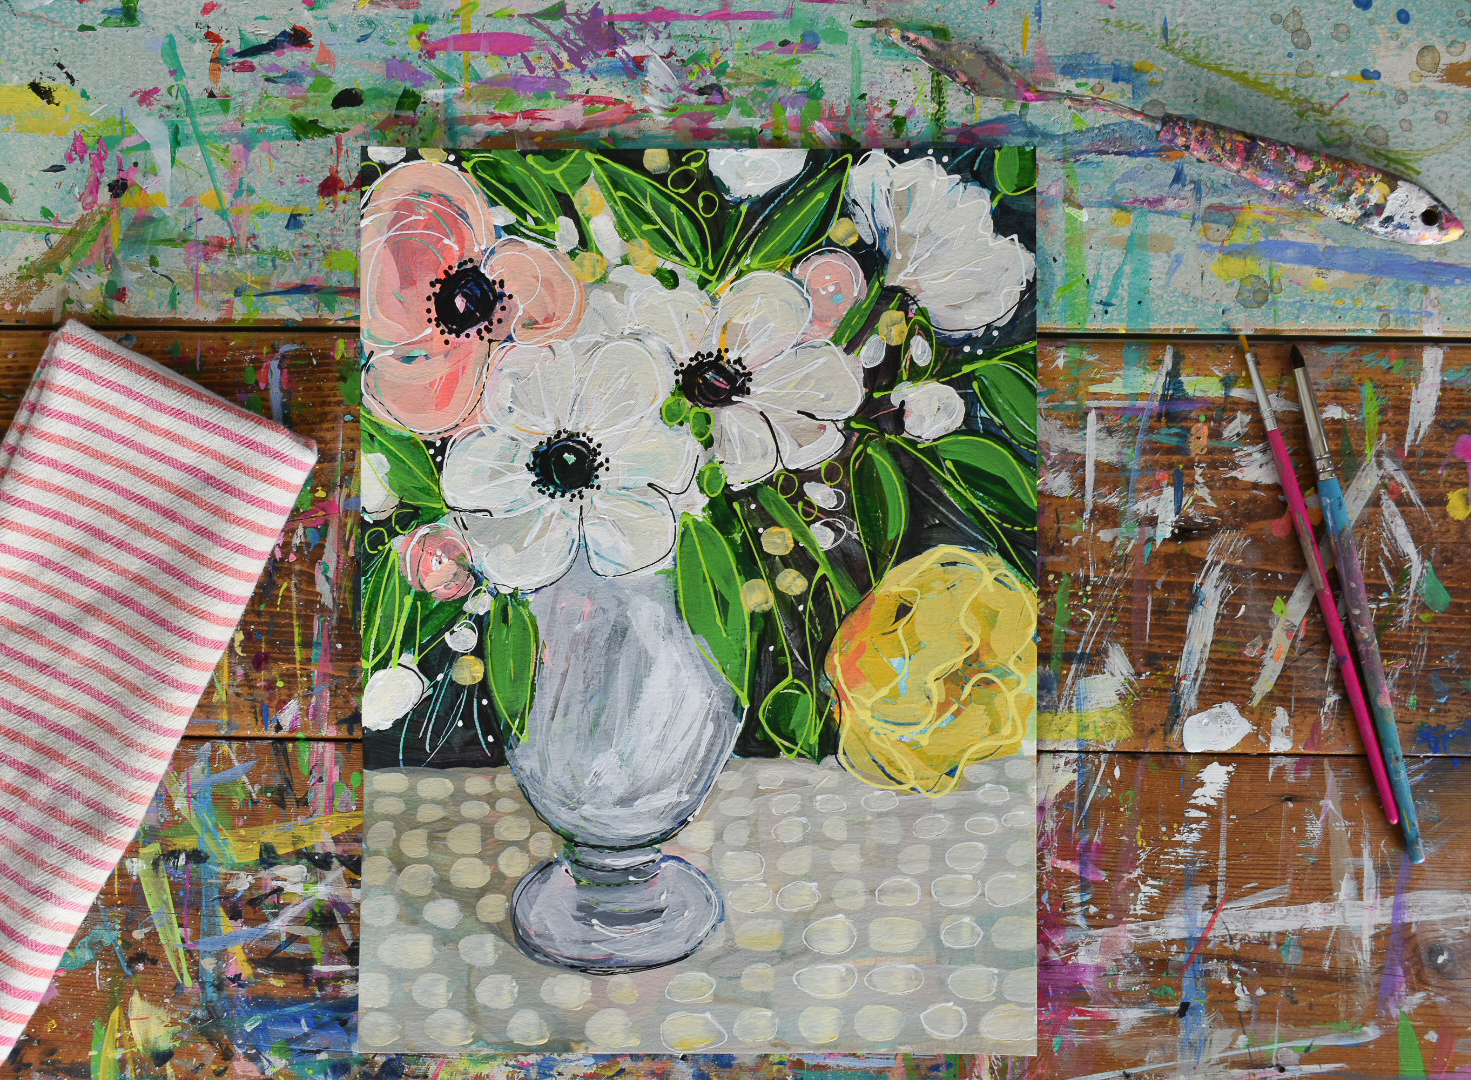 whitepoppies_boho_painting_daisyfaithart_4.jpg